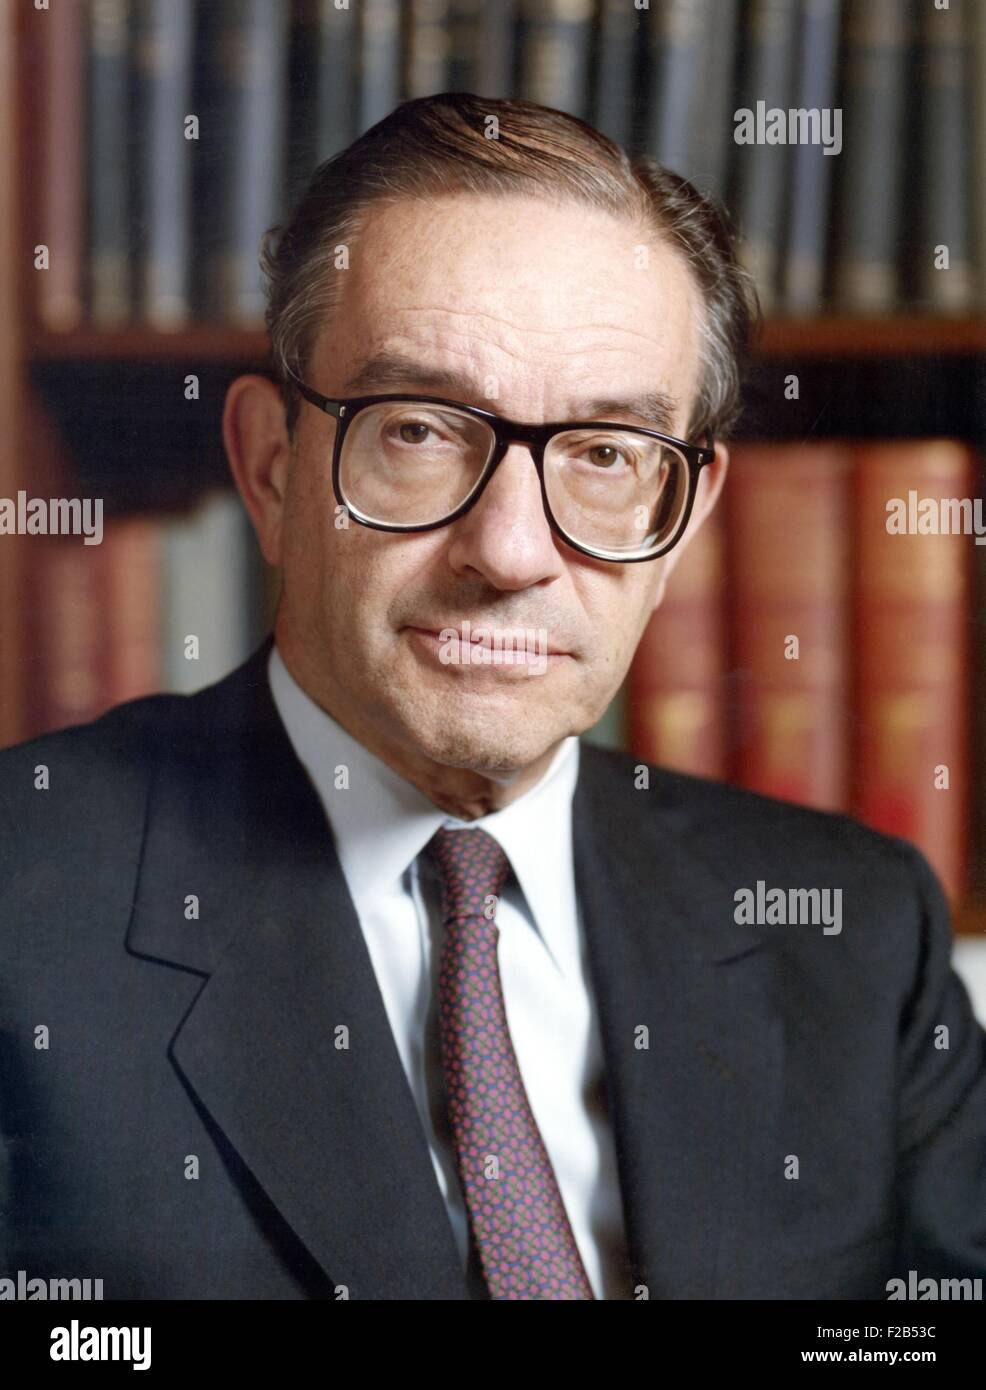 Alan Greenspan was Chairman of the Federal Reserve of the U.S. from 1987 to 2006. While he was chairman during a - Stock Image